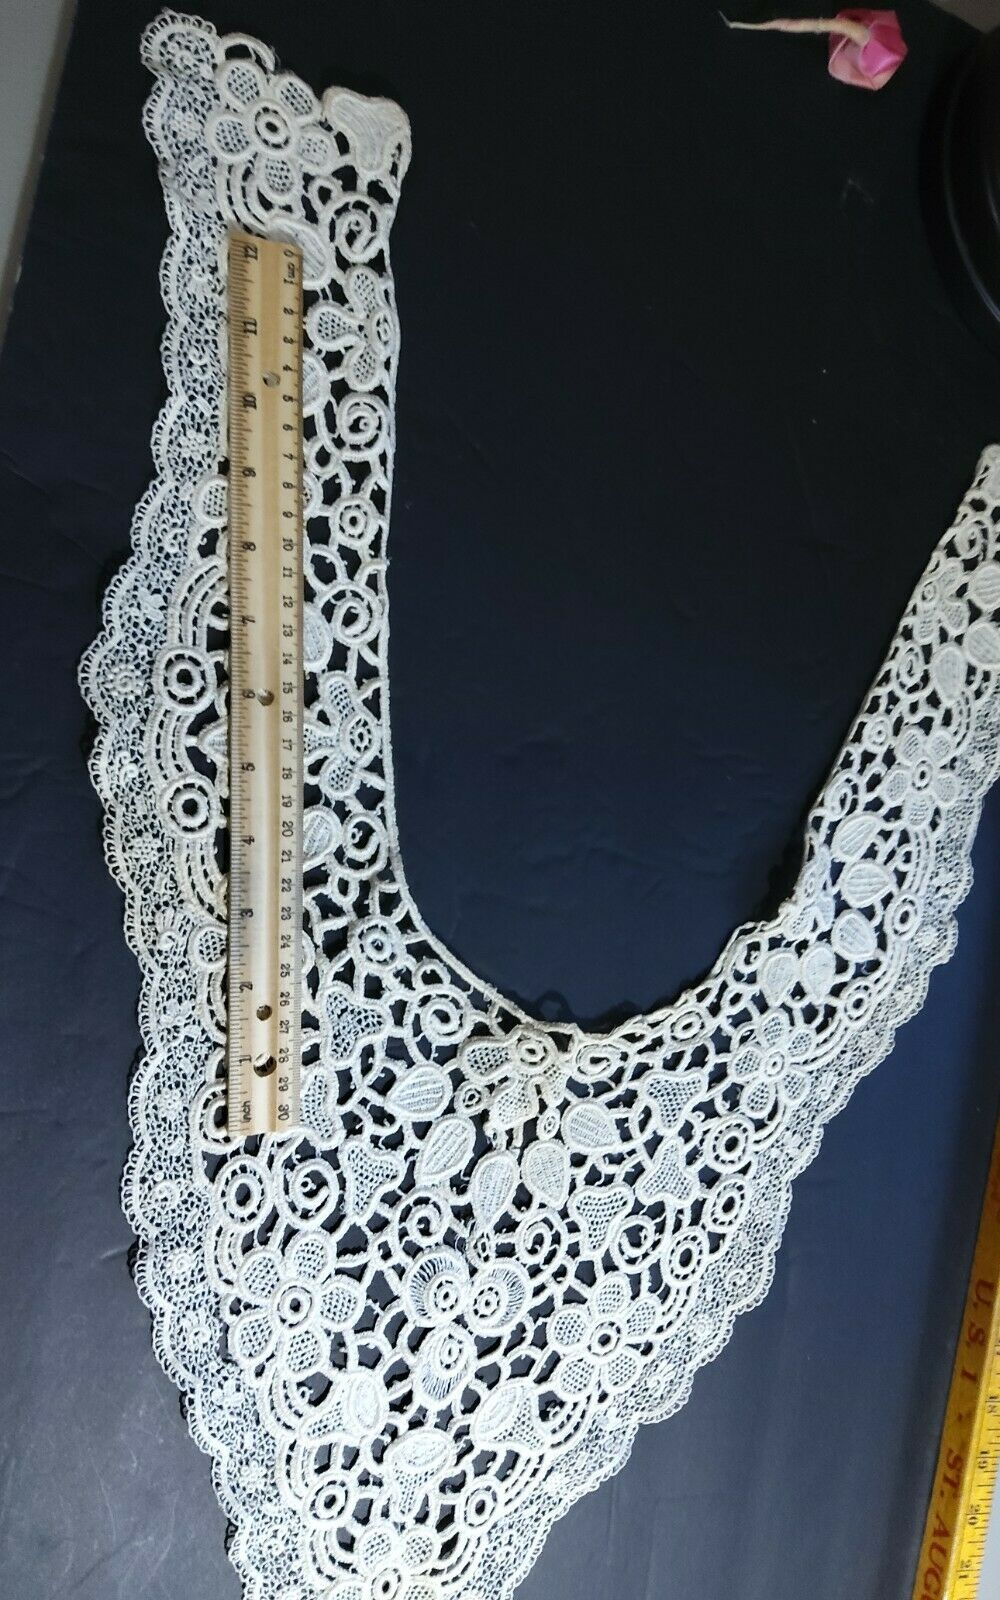 Antique Edwardian Large Bertha Collar Schiffli Lace With Floral Design Gorgeous  - $24.90